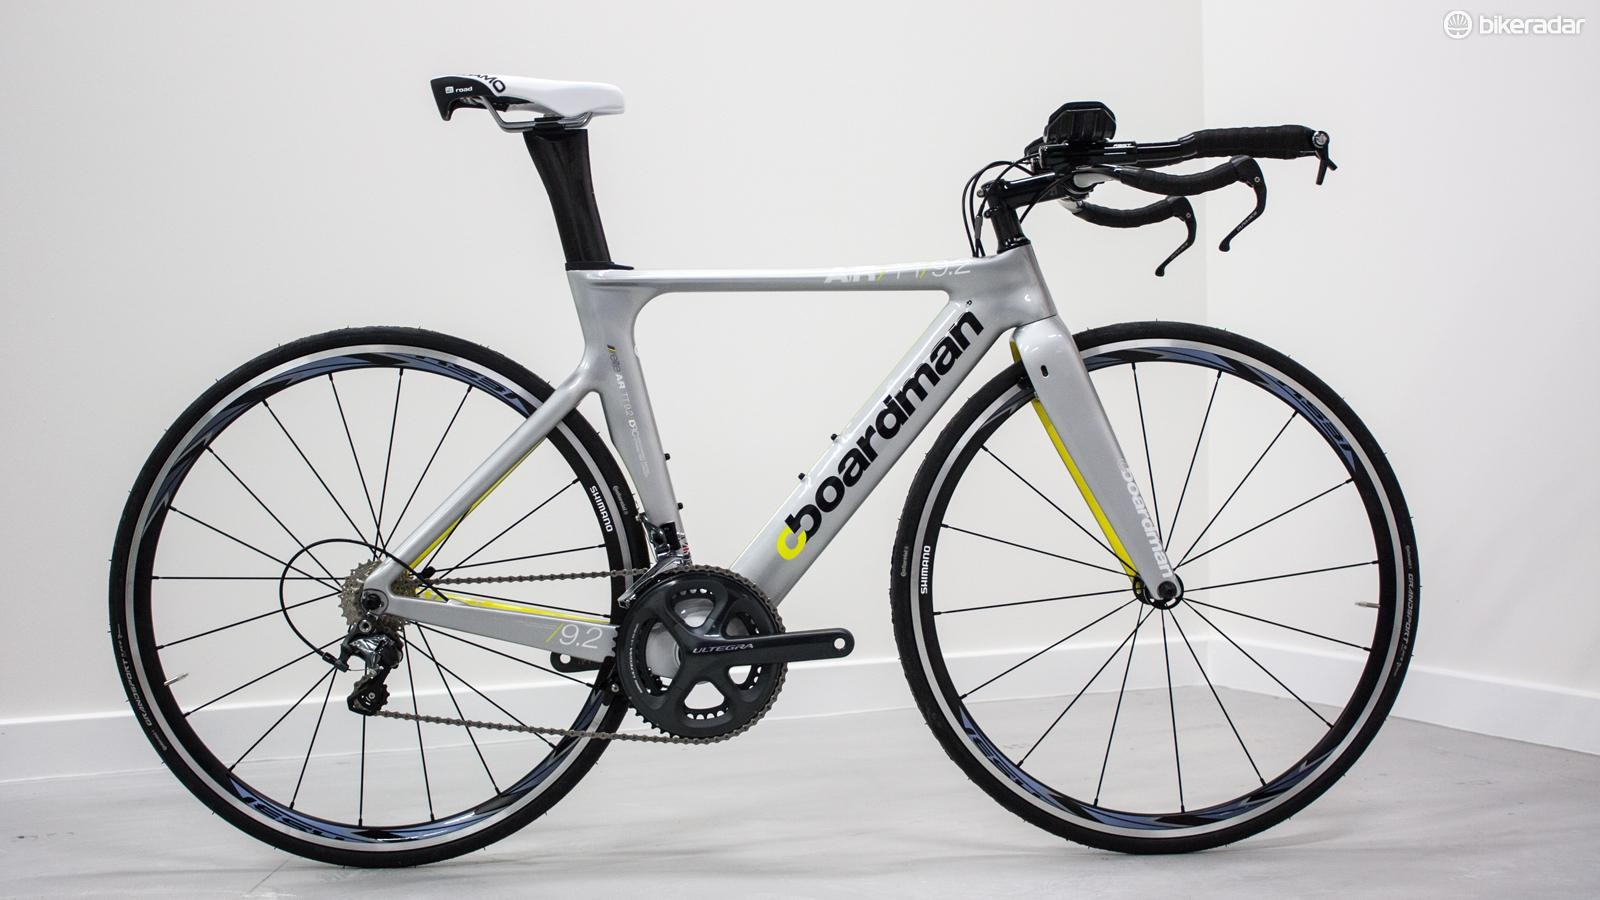 The AiR TT 9.2 is finished in sleek silver with flashes of yellow